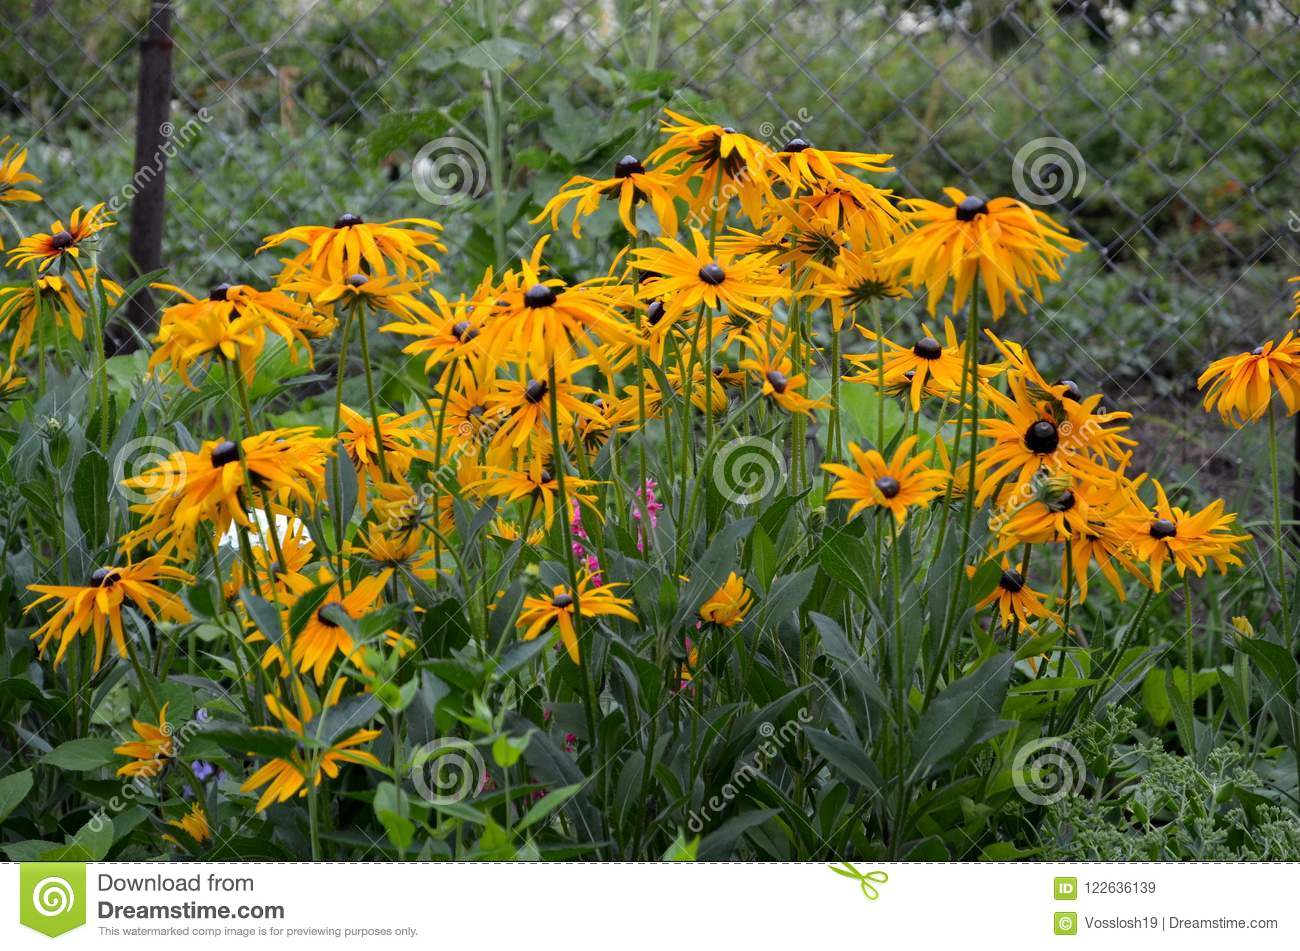 Flowers of rudbeckia are perennial stock image image of flowers flowers of rudbeckia are perennial mightylinksfo